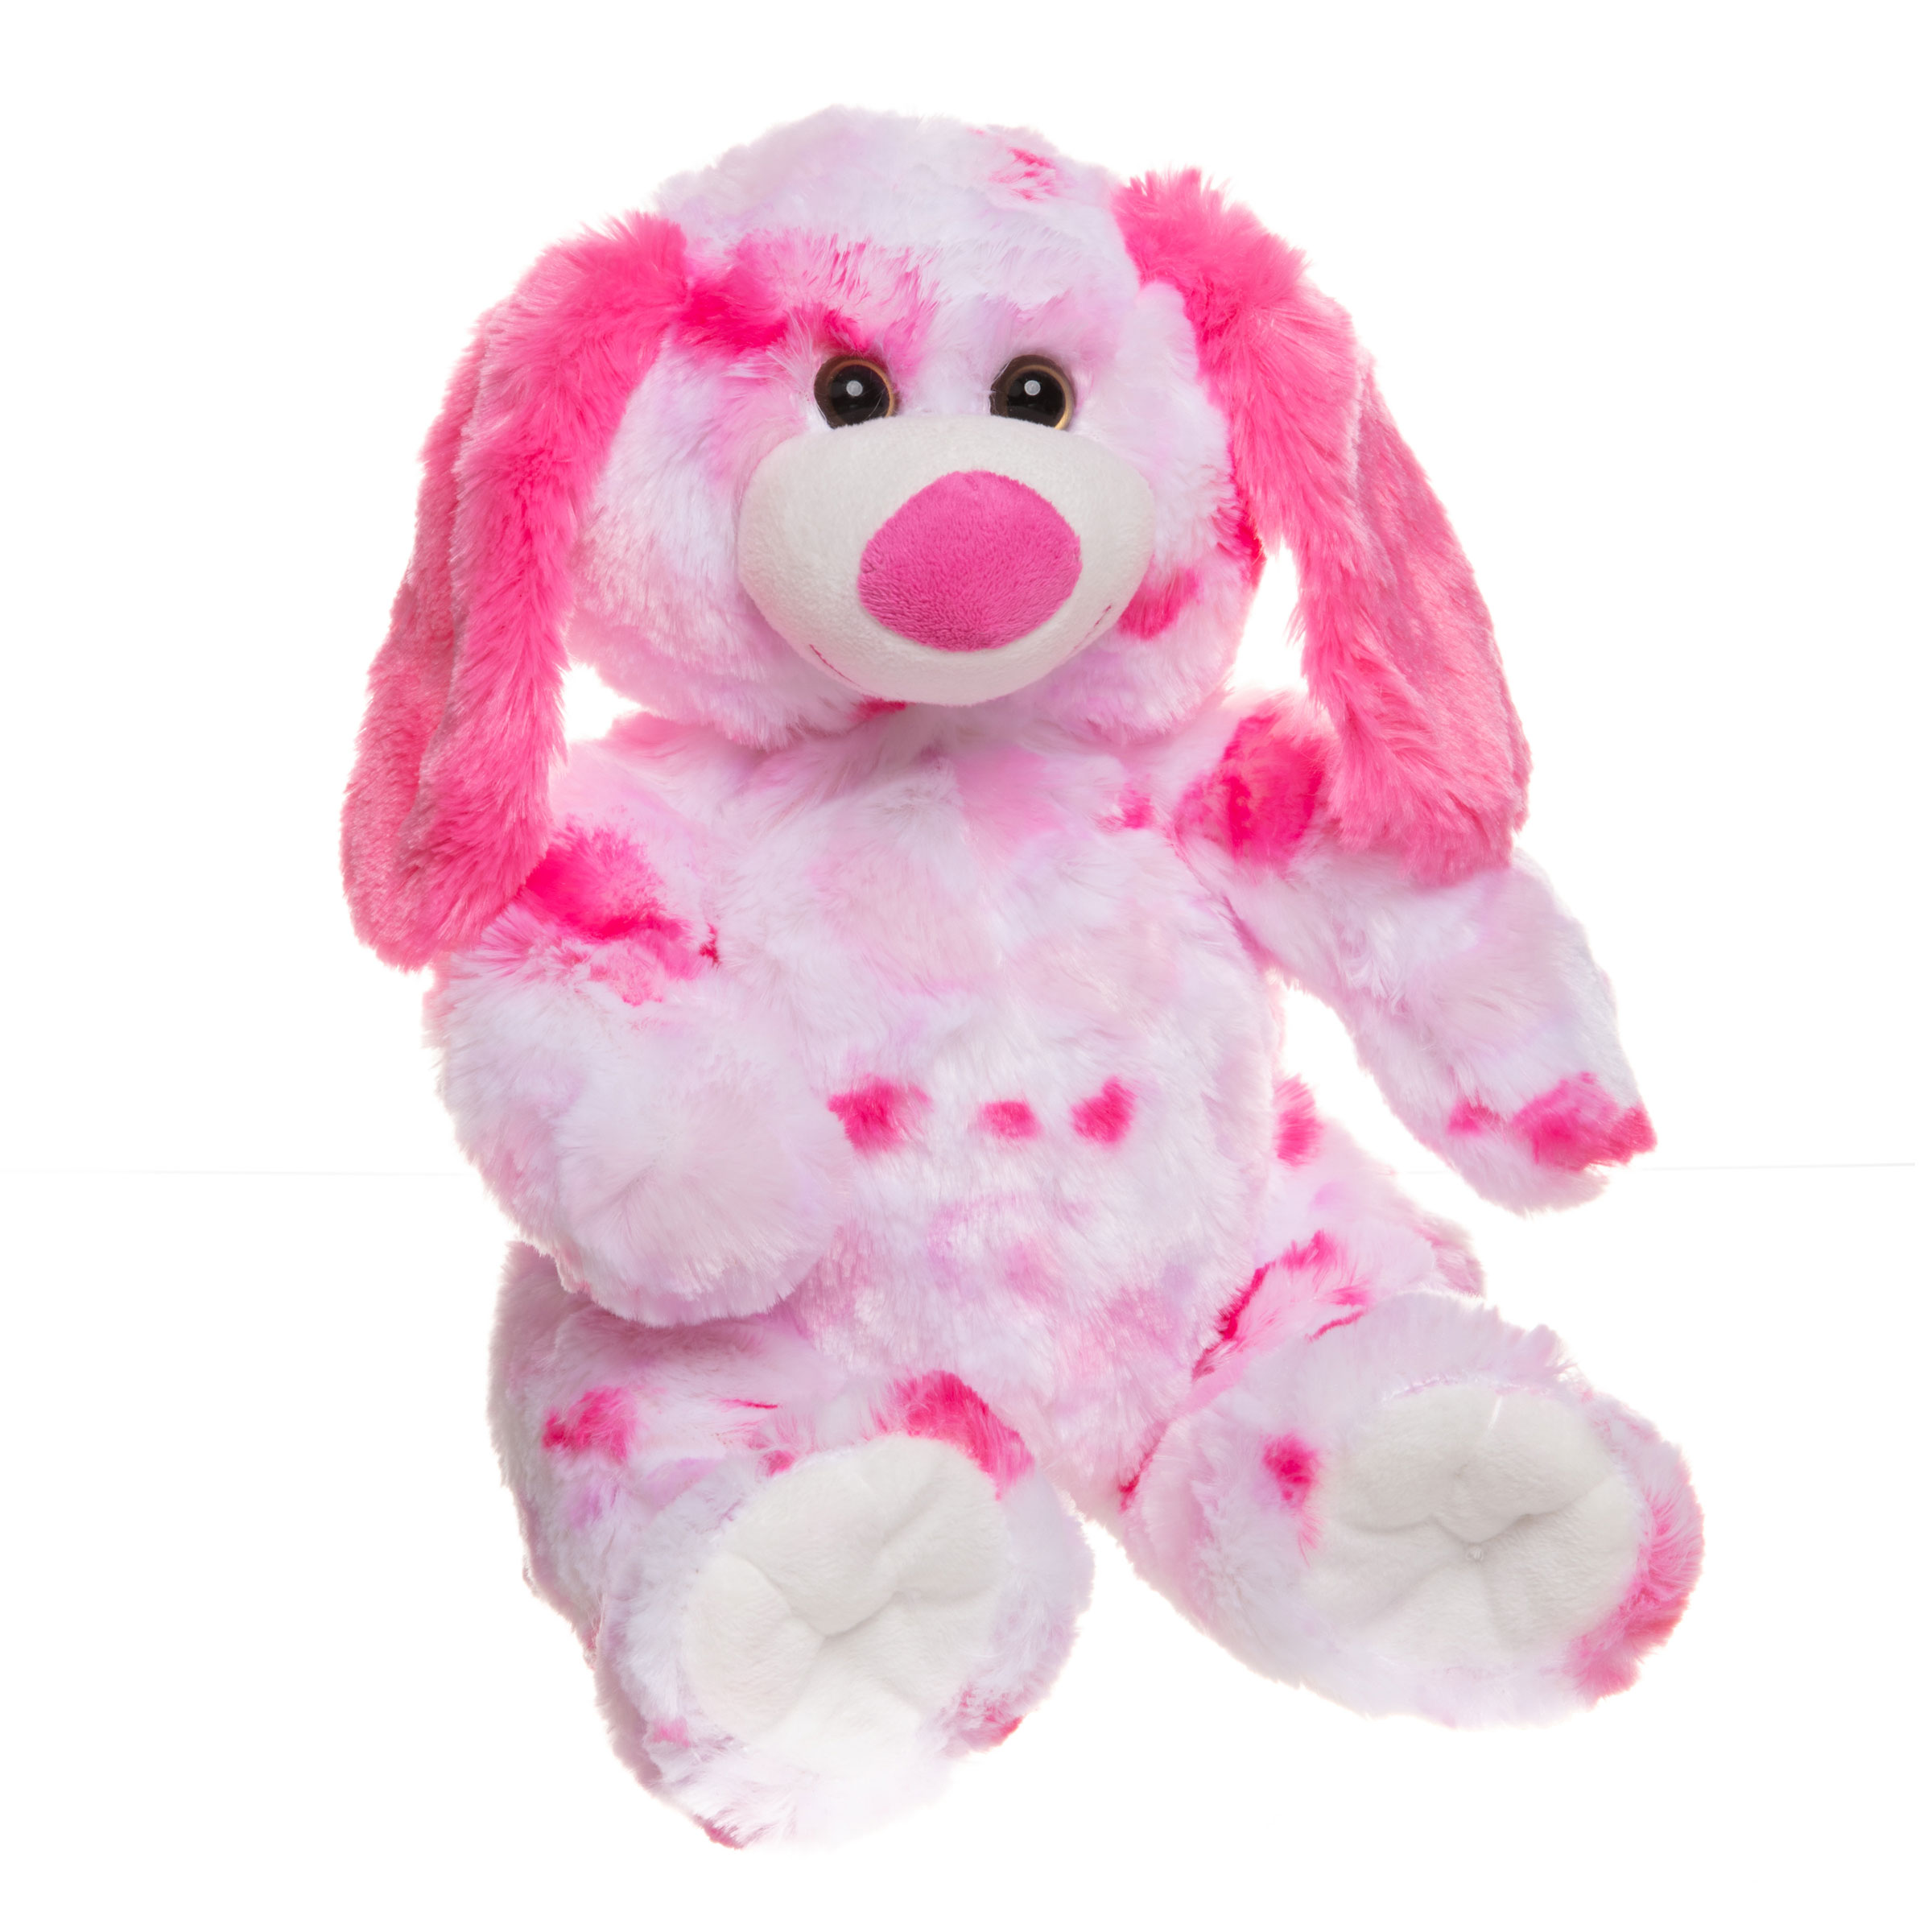 Pinky the Dog Teddy Bear